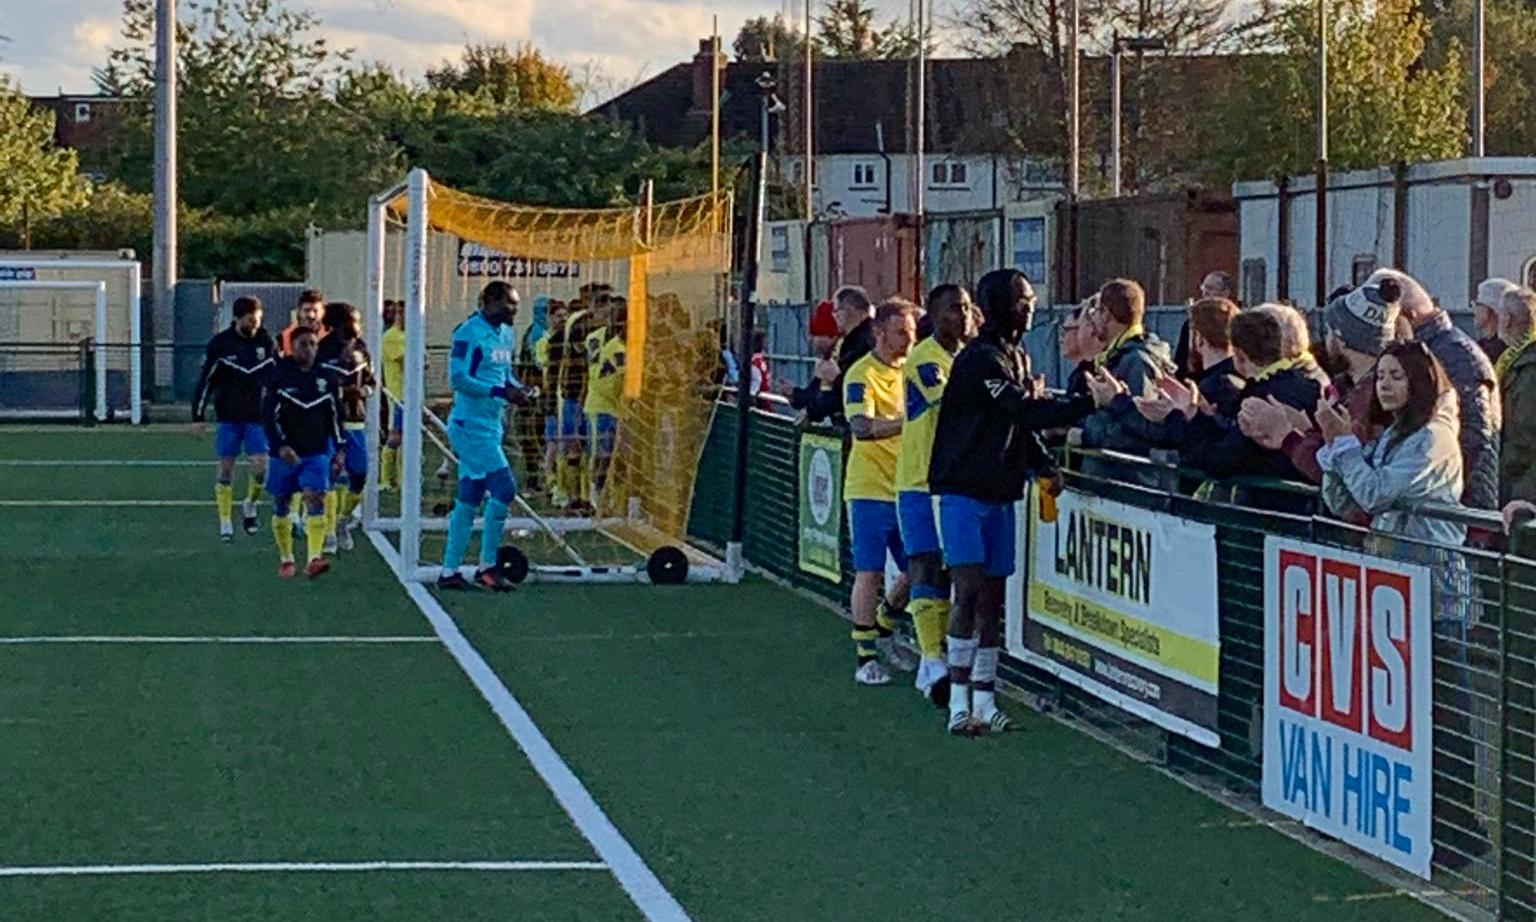 Two men arrested over alleged racist abuse at Haringey FA Cup match